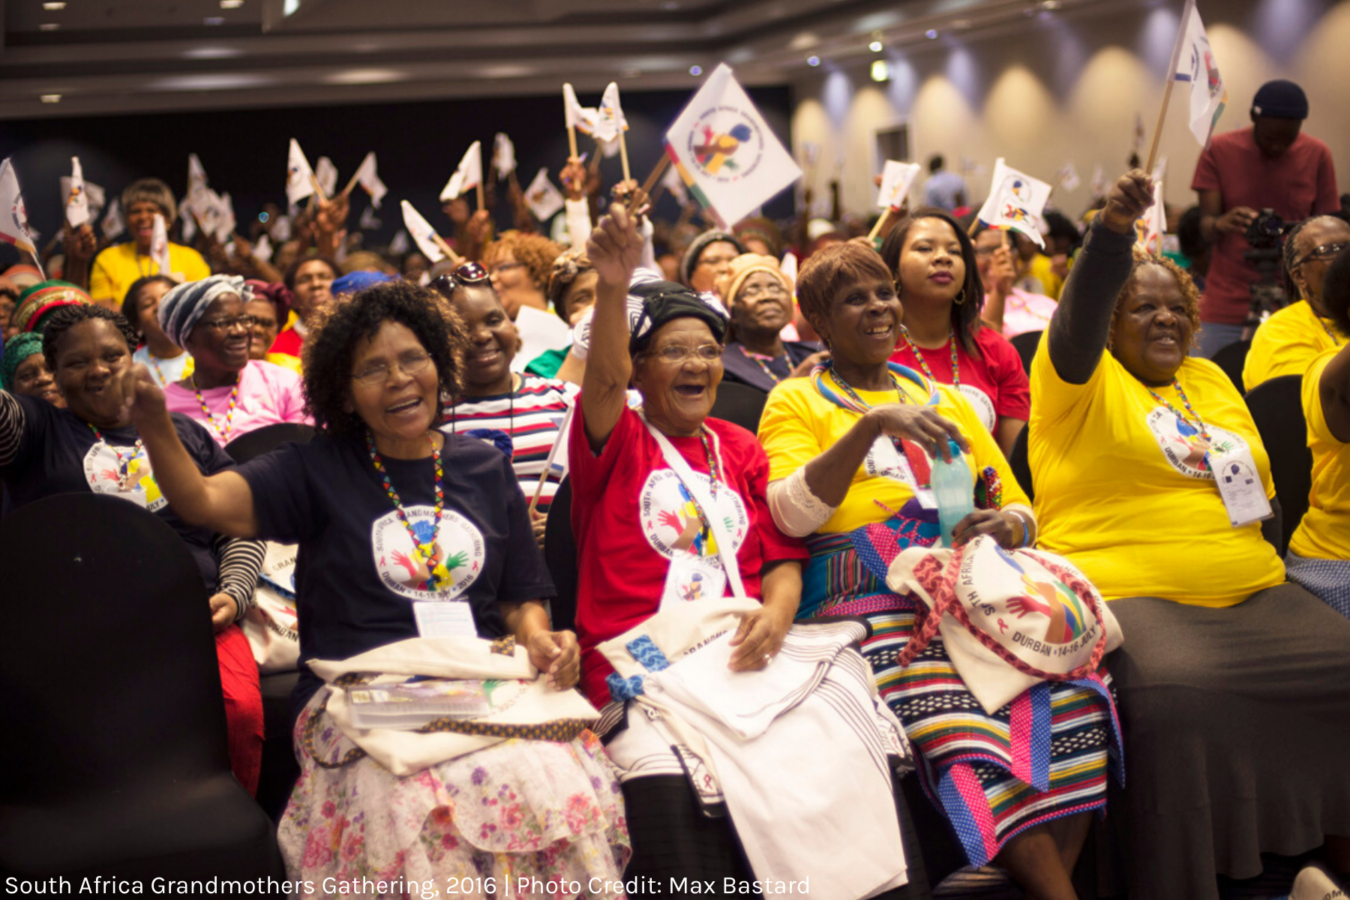 South Africa Grandmothers Gathering